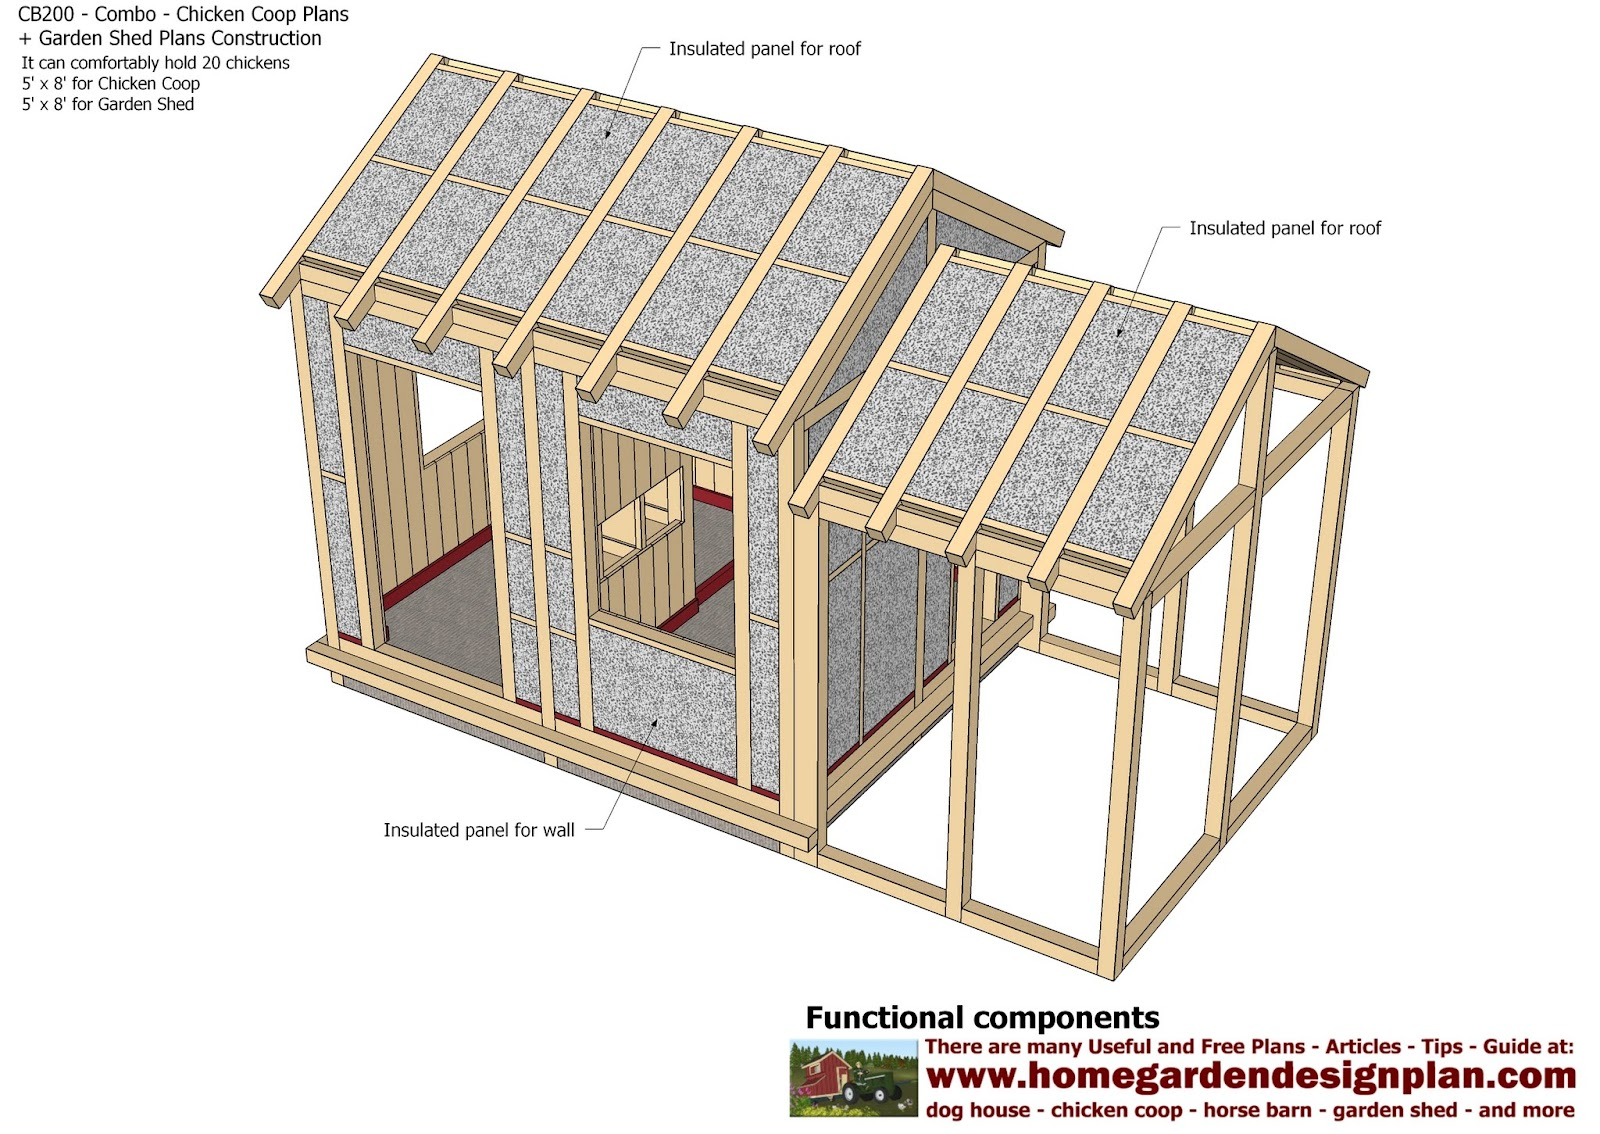 Shed plans building cb200 combo plans chicken coop plans for Dog kennel shed combo plans